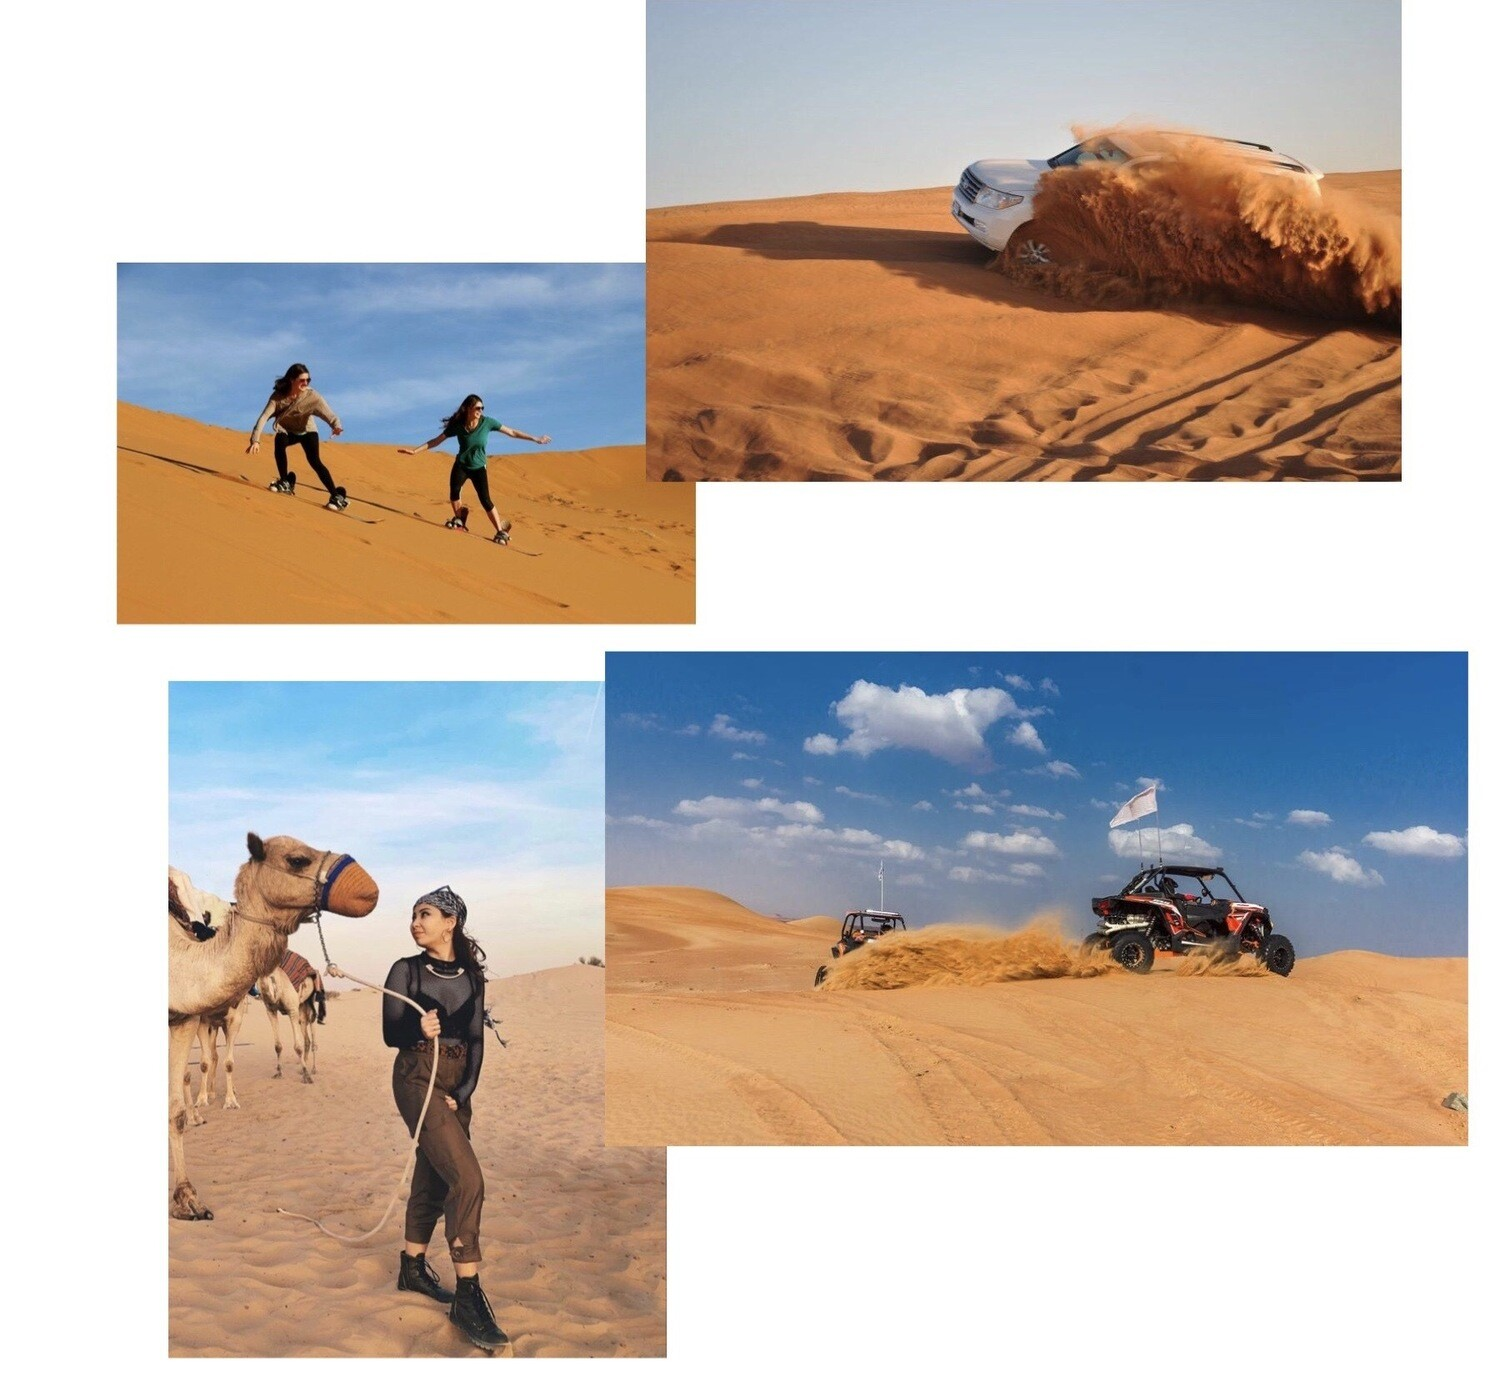 SPECIAL OFFER !!! SAFARI + BUGGY POLARIS 1000-cc - 30 min 665 AED /  PERS